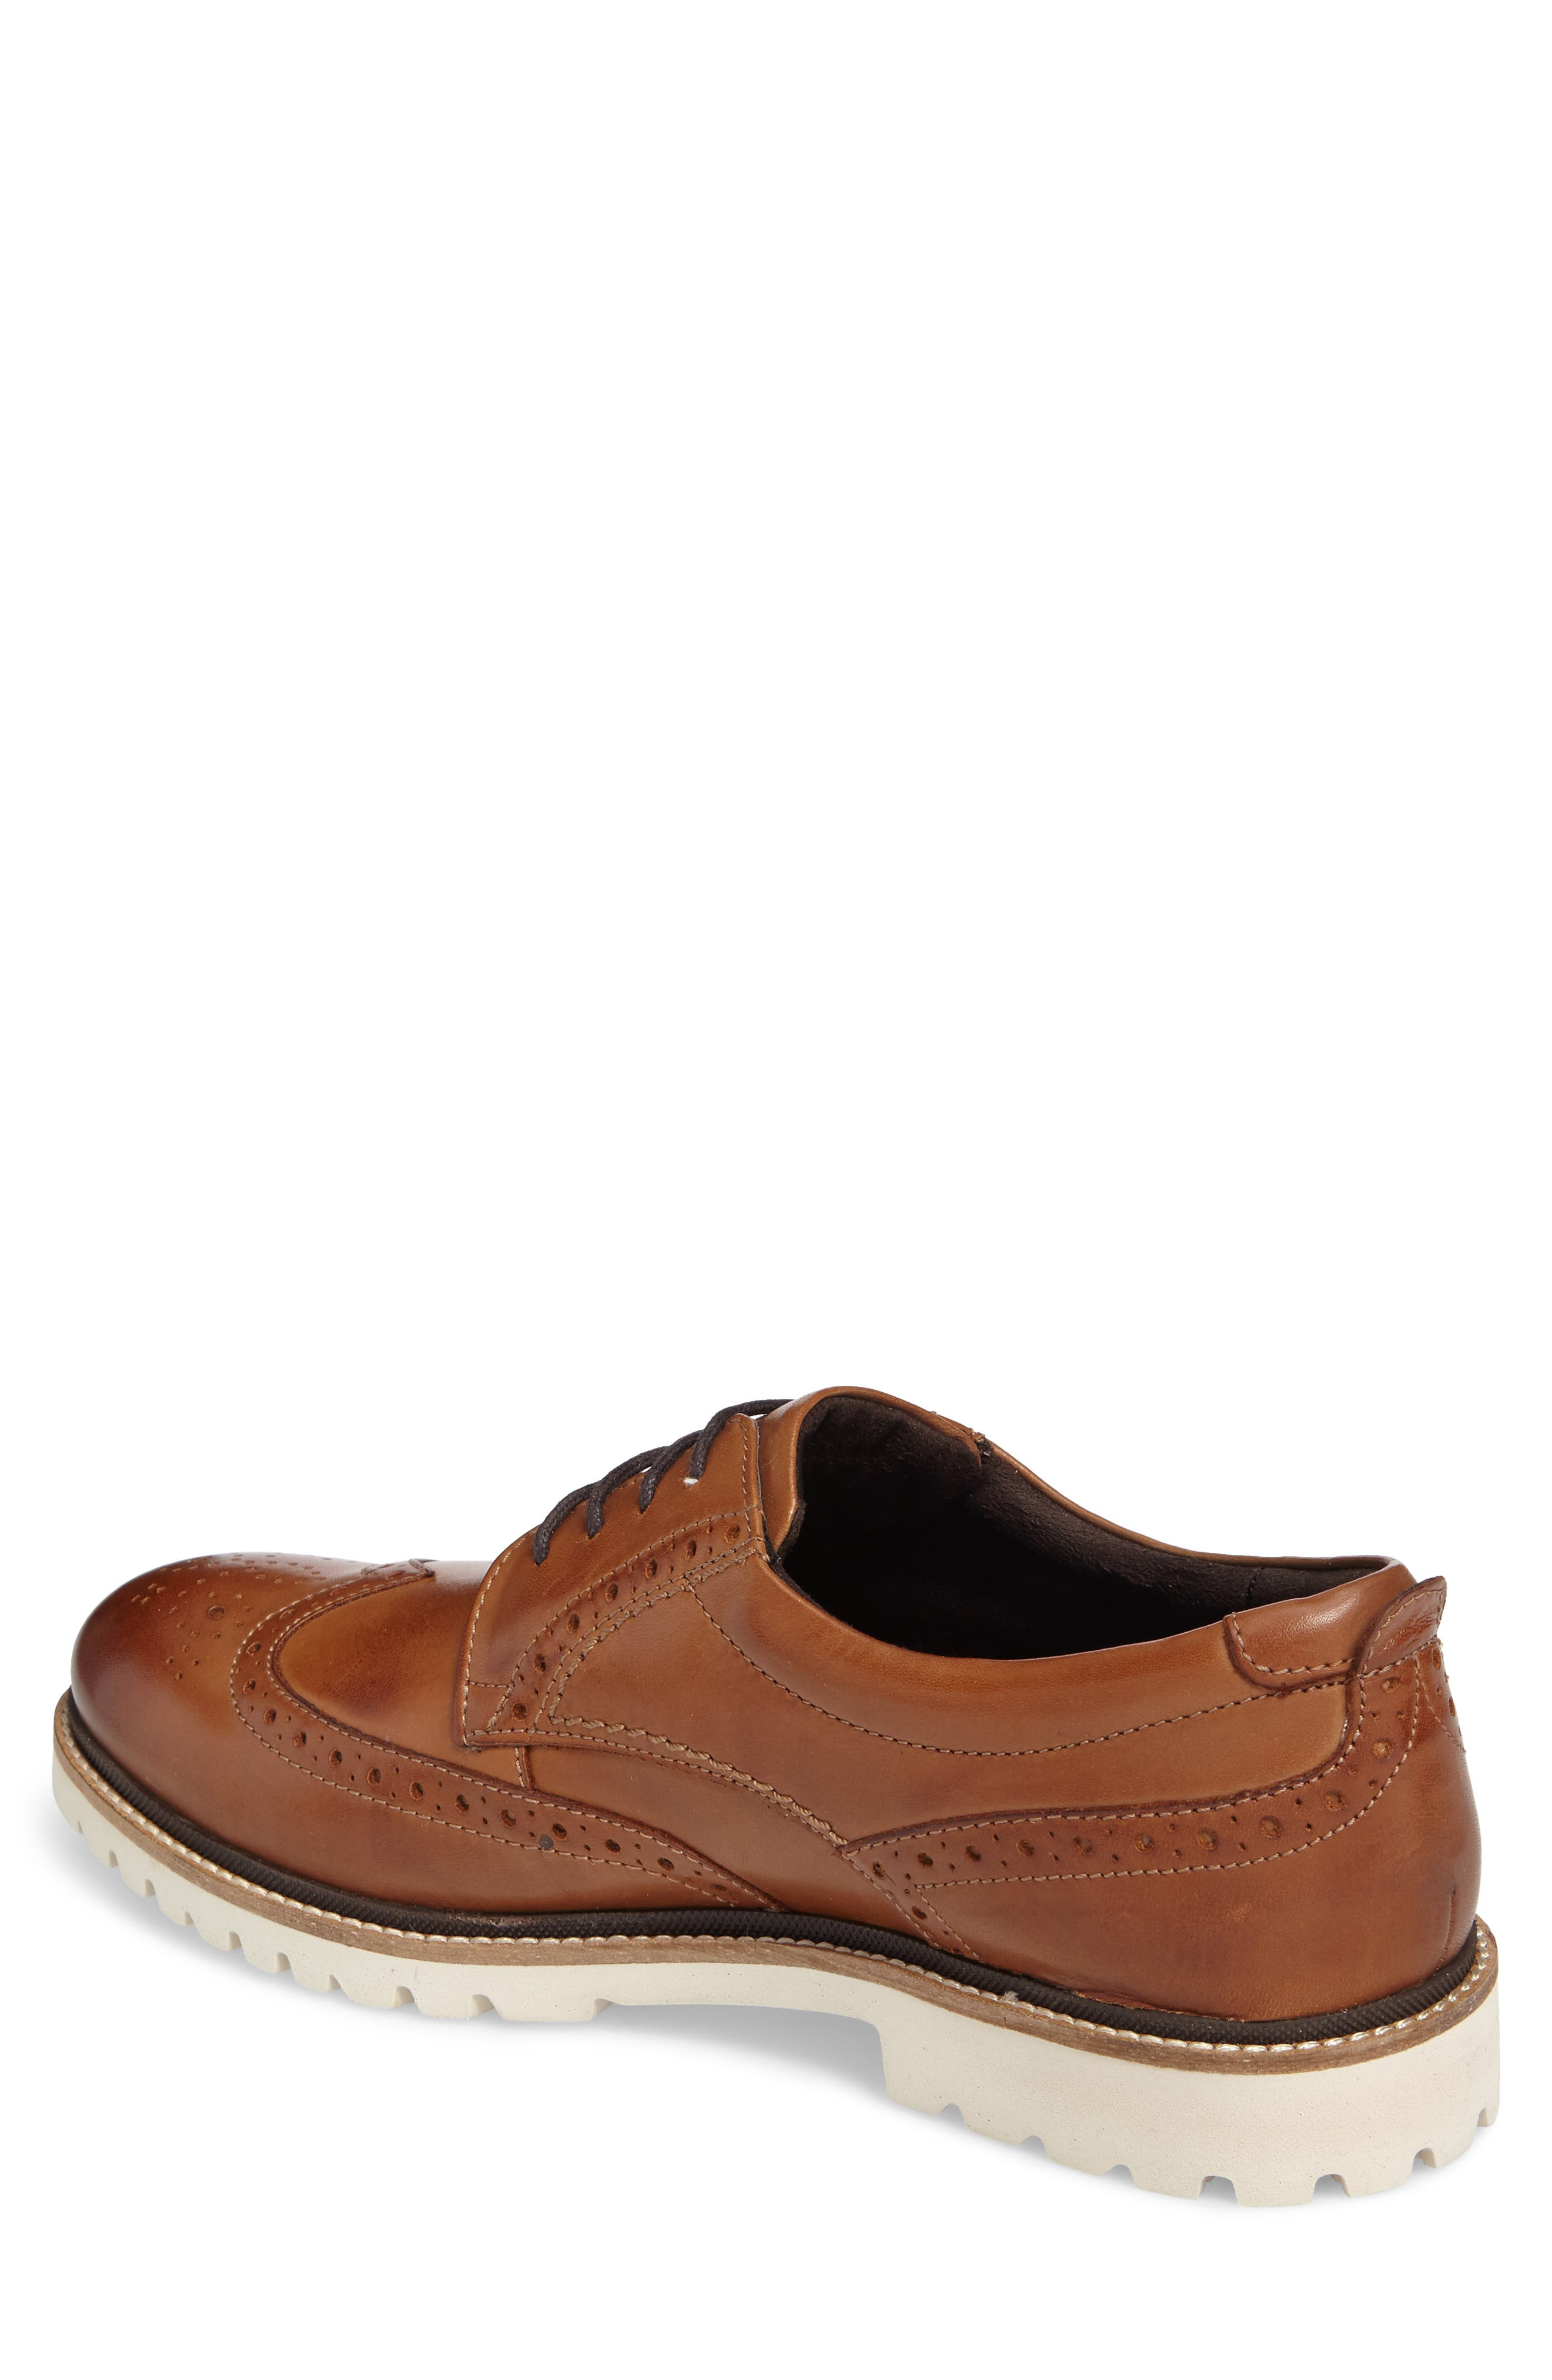 Marshall Wingtip,                             Alternate thumbnail 7, color,